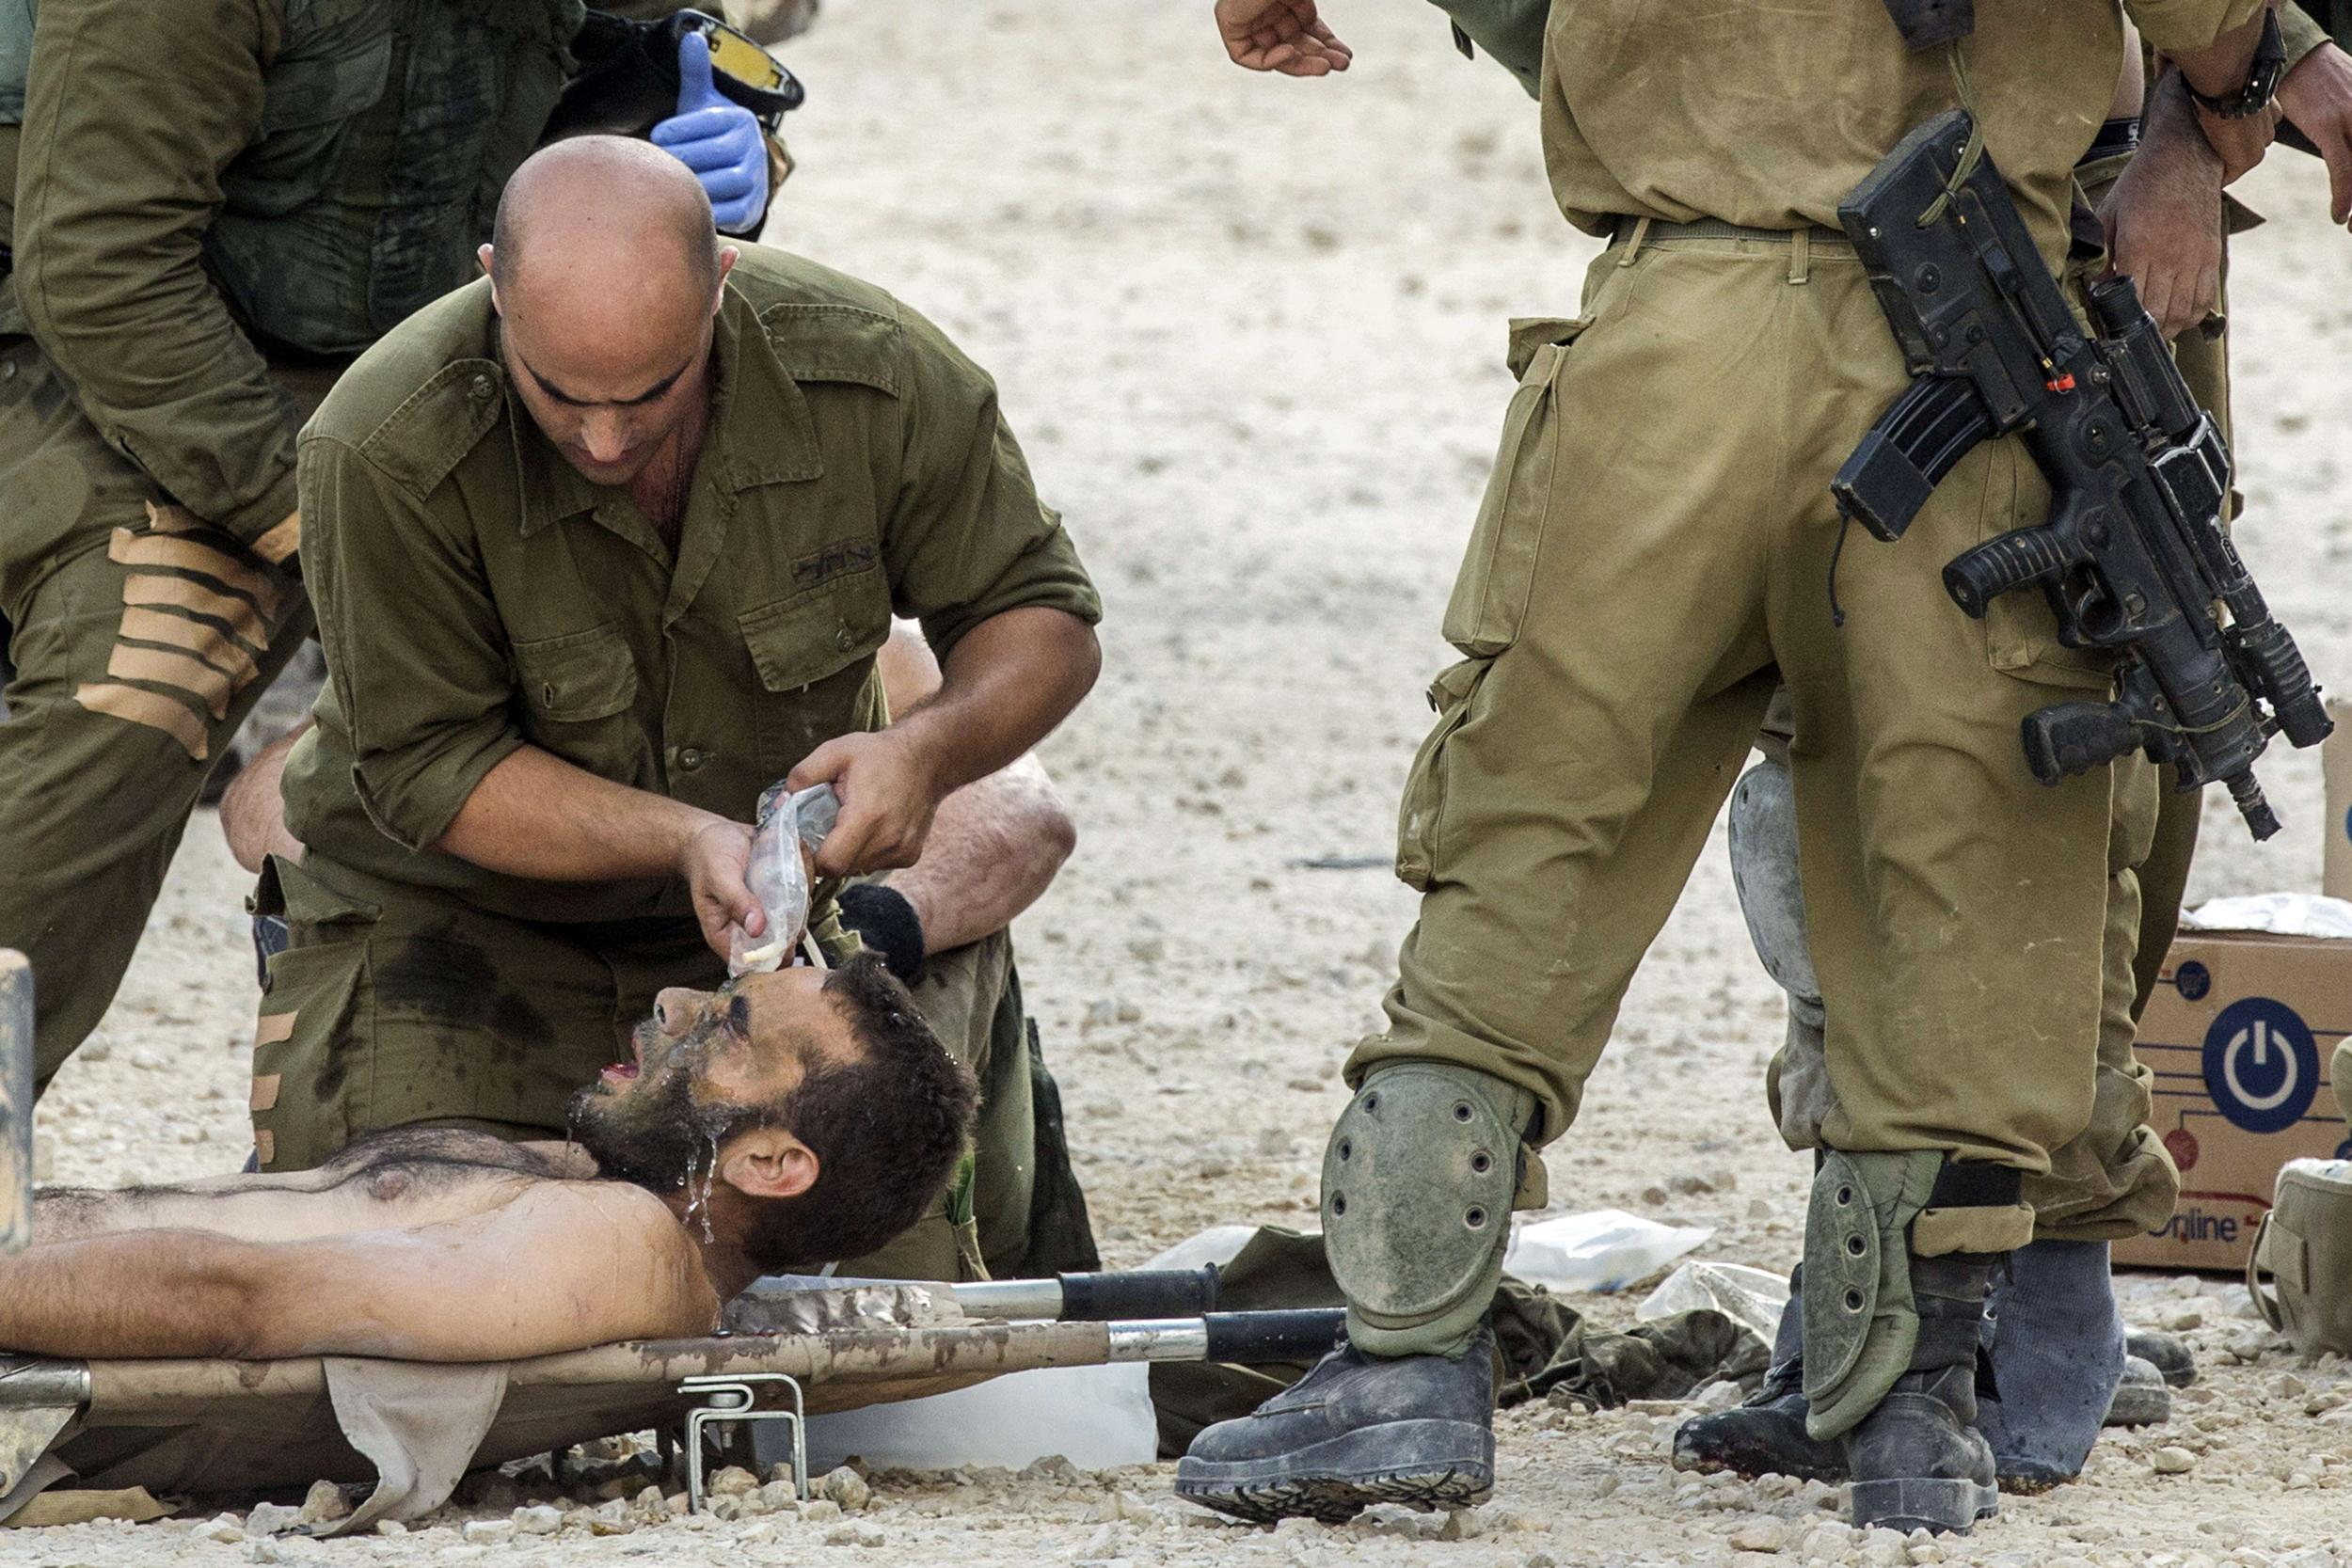 140720-israel-soldier-injured-1020a_f7c68d9f367284a7b5909bc7ee595a91.jpg